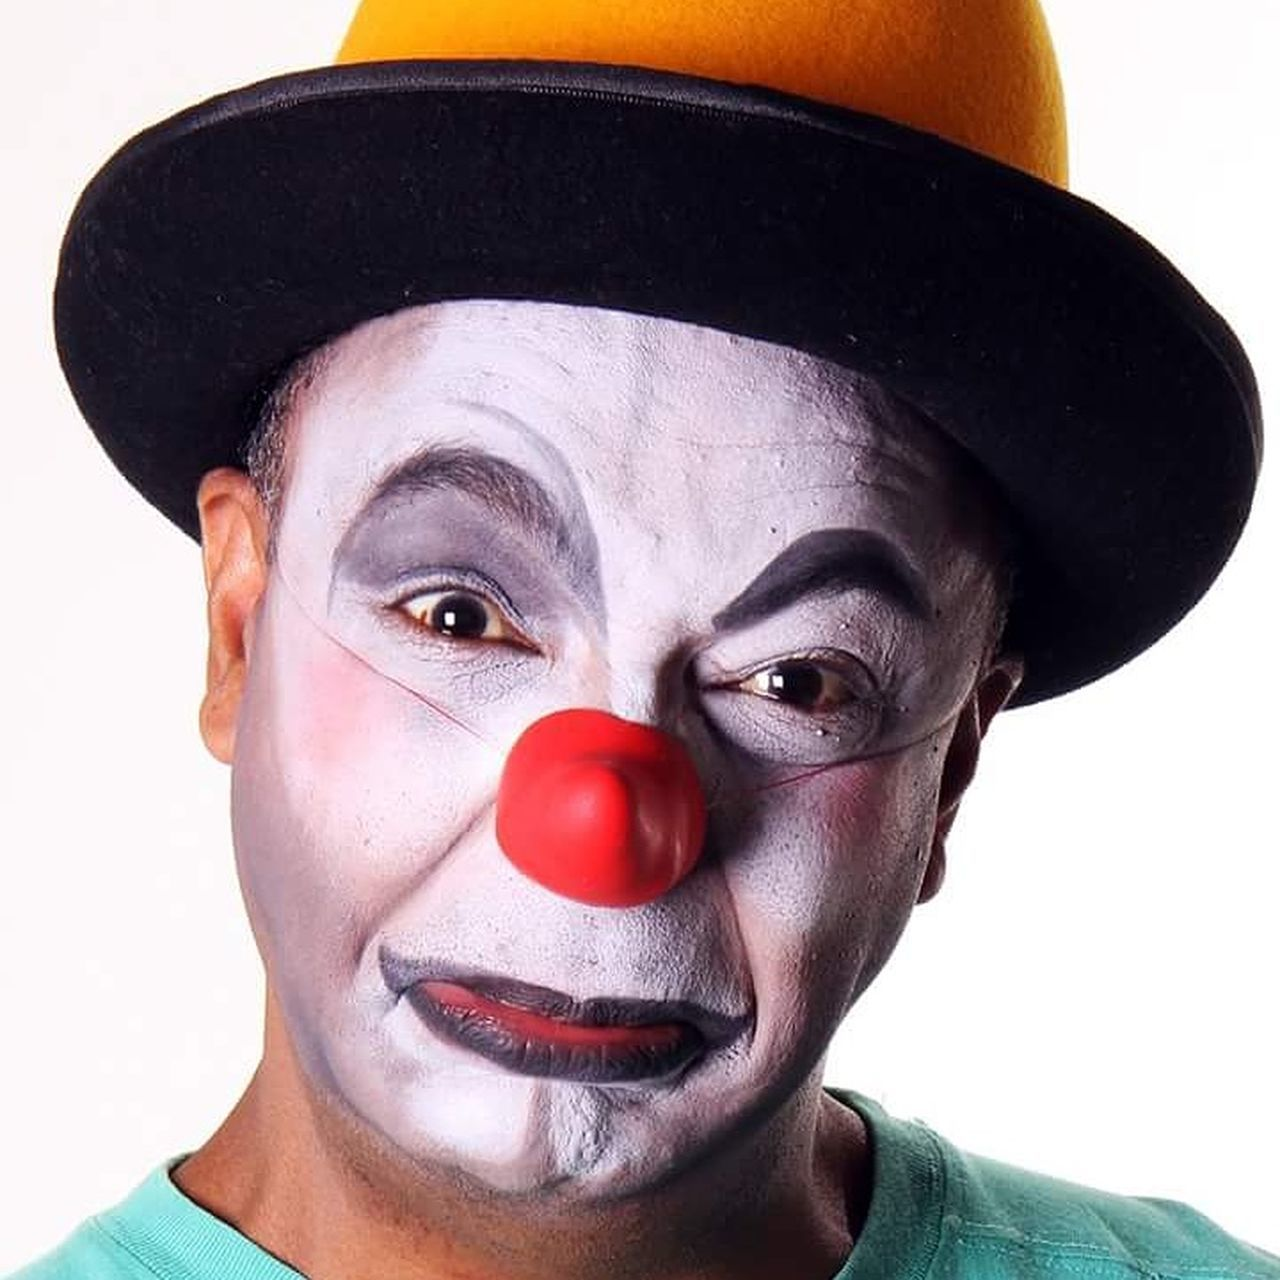 face paint, portrait, headshot, looking at camera, white background, studio shot, one person, young adult, human face, adult, red, one man only, clown, close-up, adults only, human body part, real people, men, facial mask - beauty product, only men, people, mime, fan - enthusiast, day